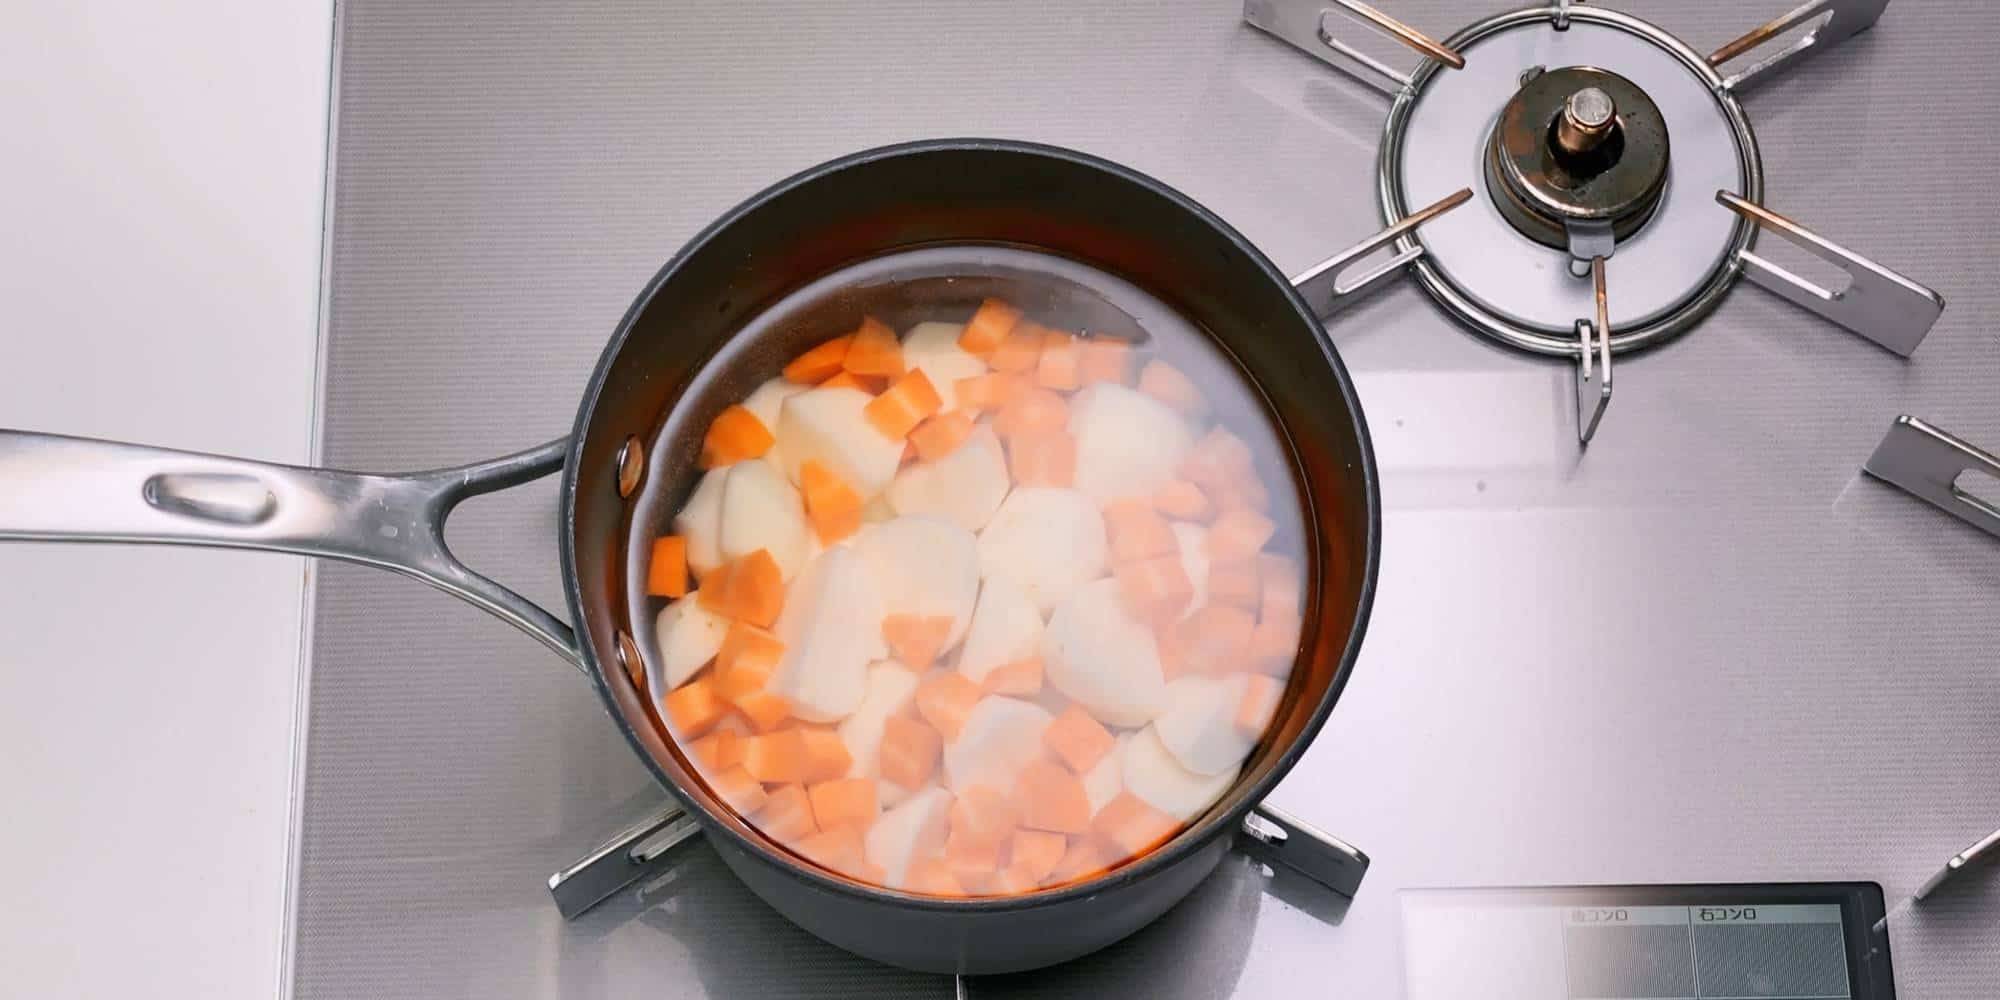 Boiling potatoes and carrots for salad.